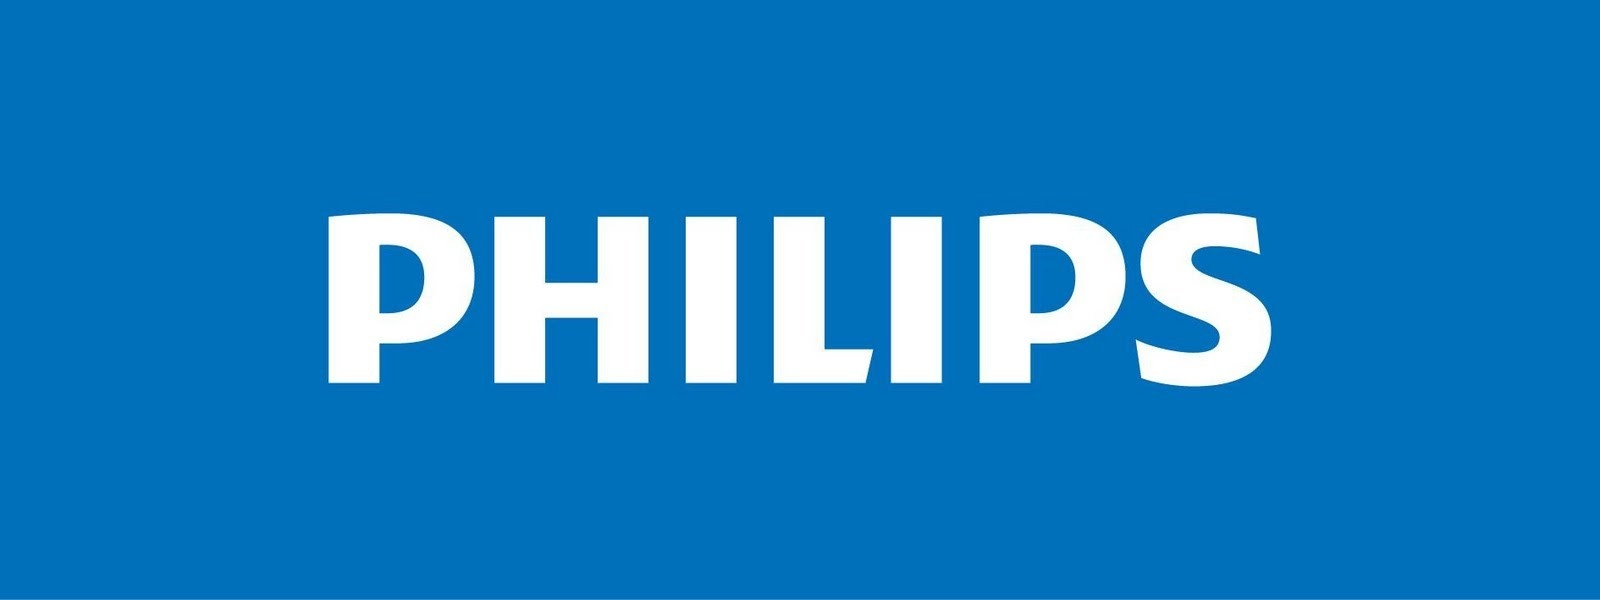 Philips Promotional Code 2019